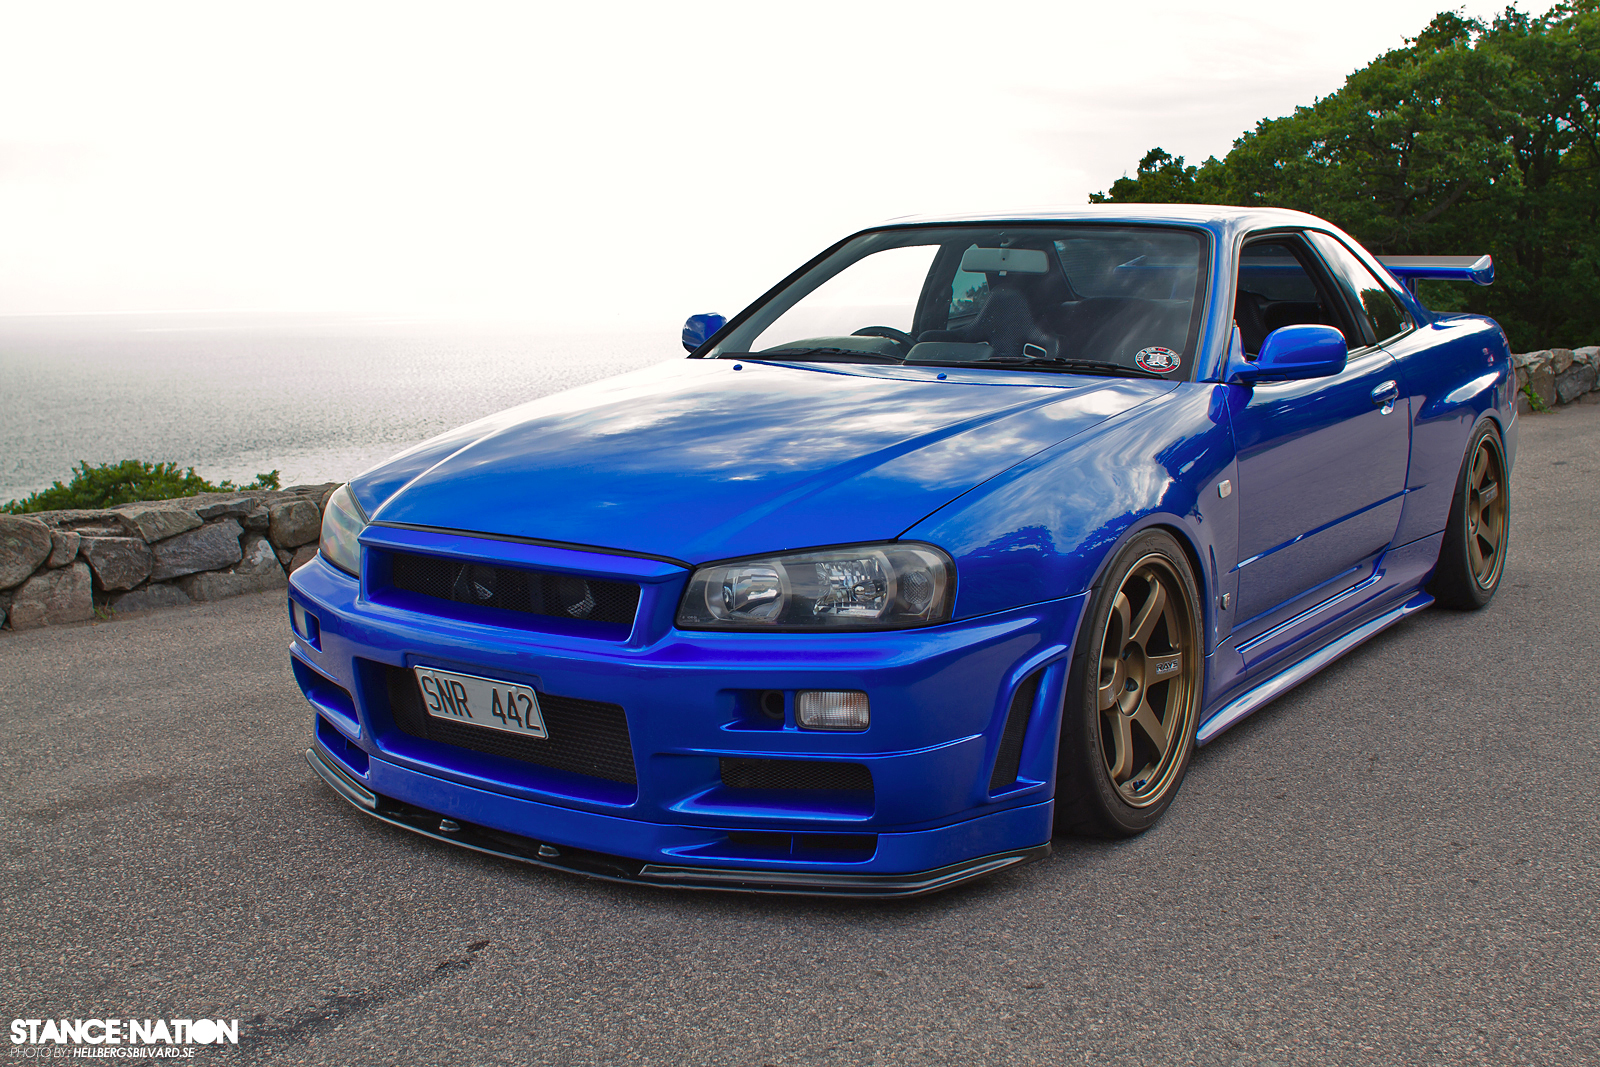 blue nissan skyline r34 for sale autos weblog. Black Bedroom Furniture Sets. Home Design Ideas